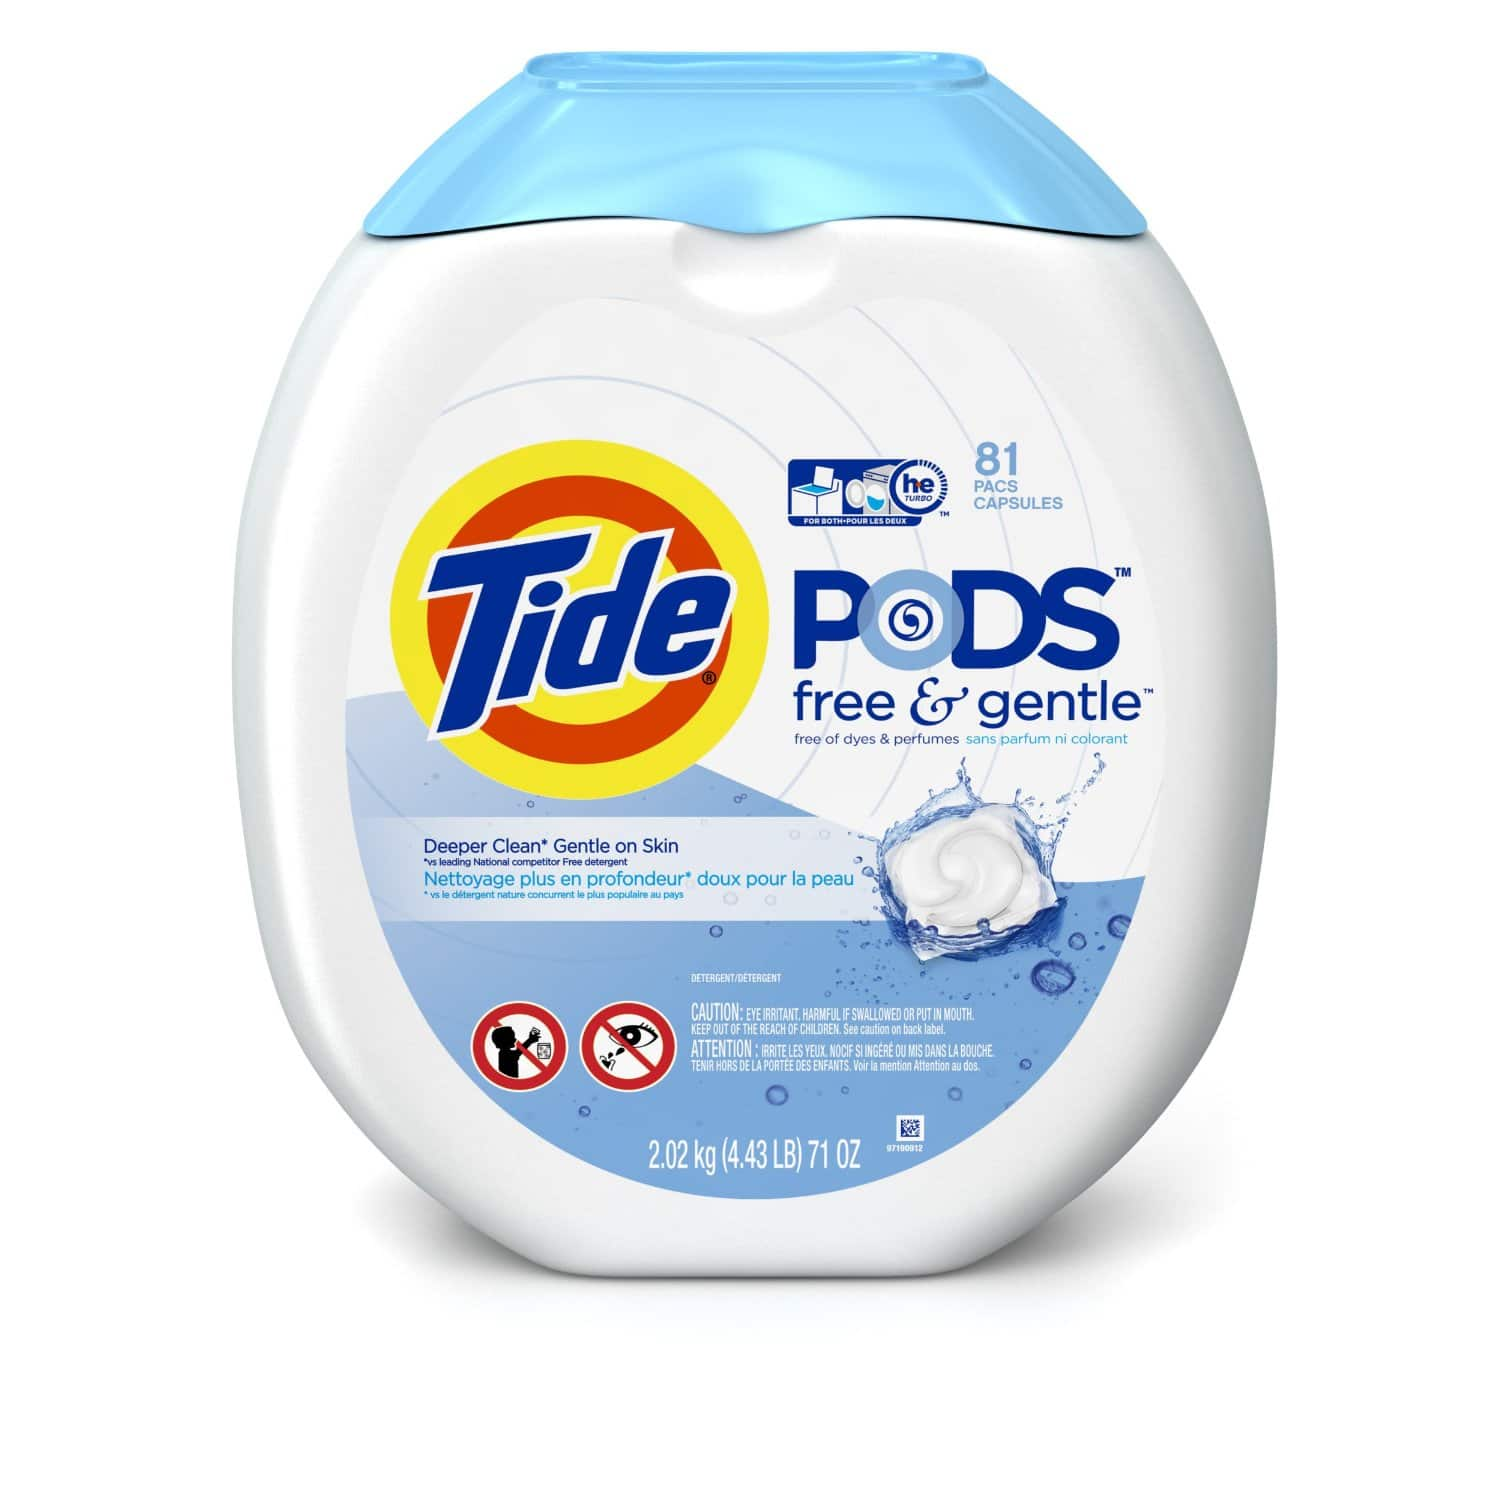 Tide PODS Free and Gentle Laundry Detergent Pacs 81 @ Amazon - $10.95 with $5 coupon and 15% S&S